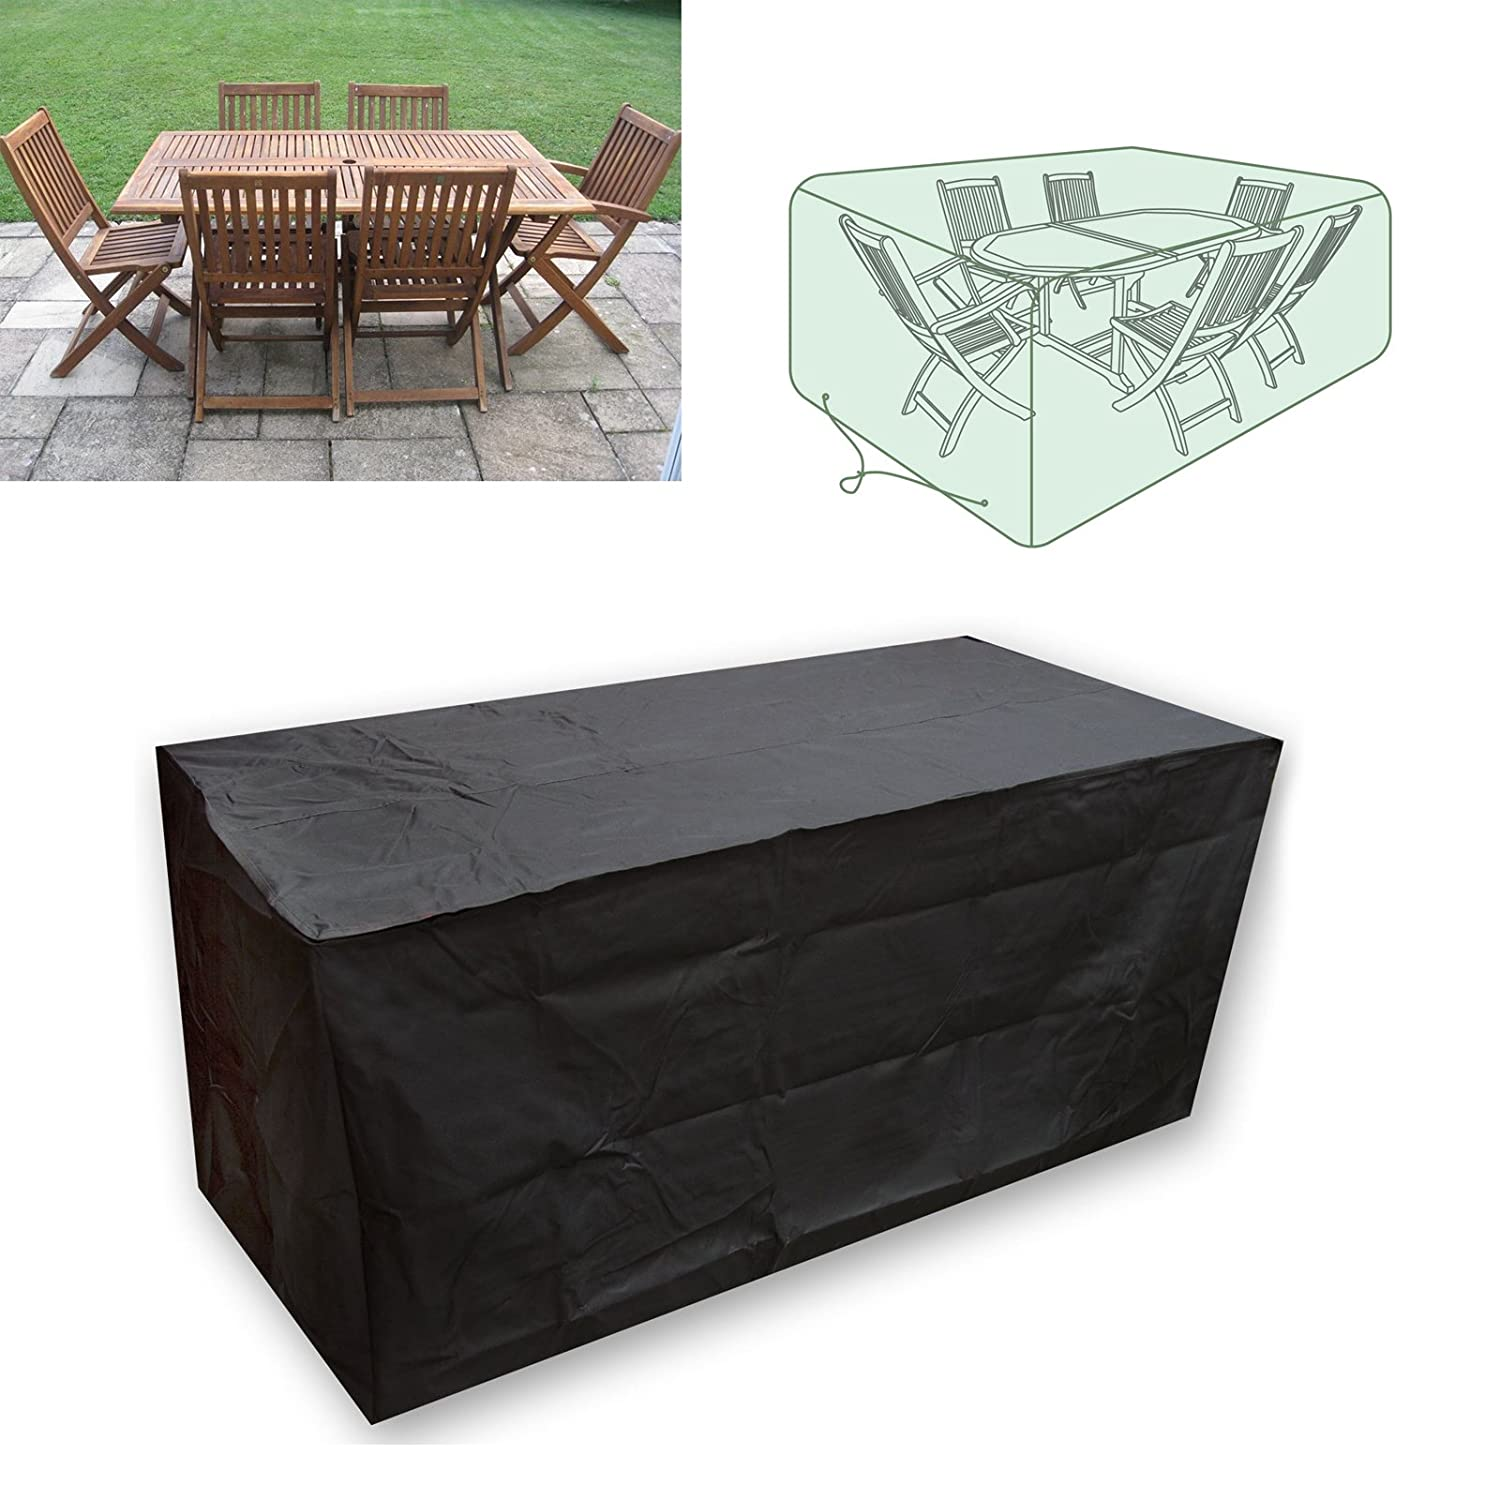 Vinteky OUTDOOR WATERPROOF PATIO FURNITURE SET COVER COVERS TABLE BENCH CUBE GARDEN (Round-110*230cm)